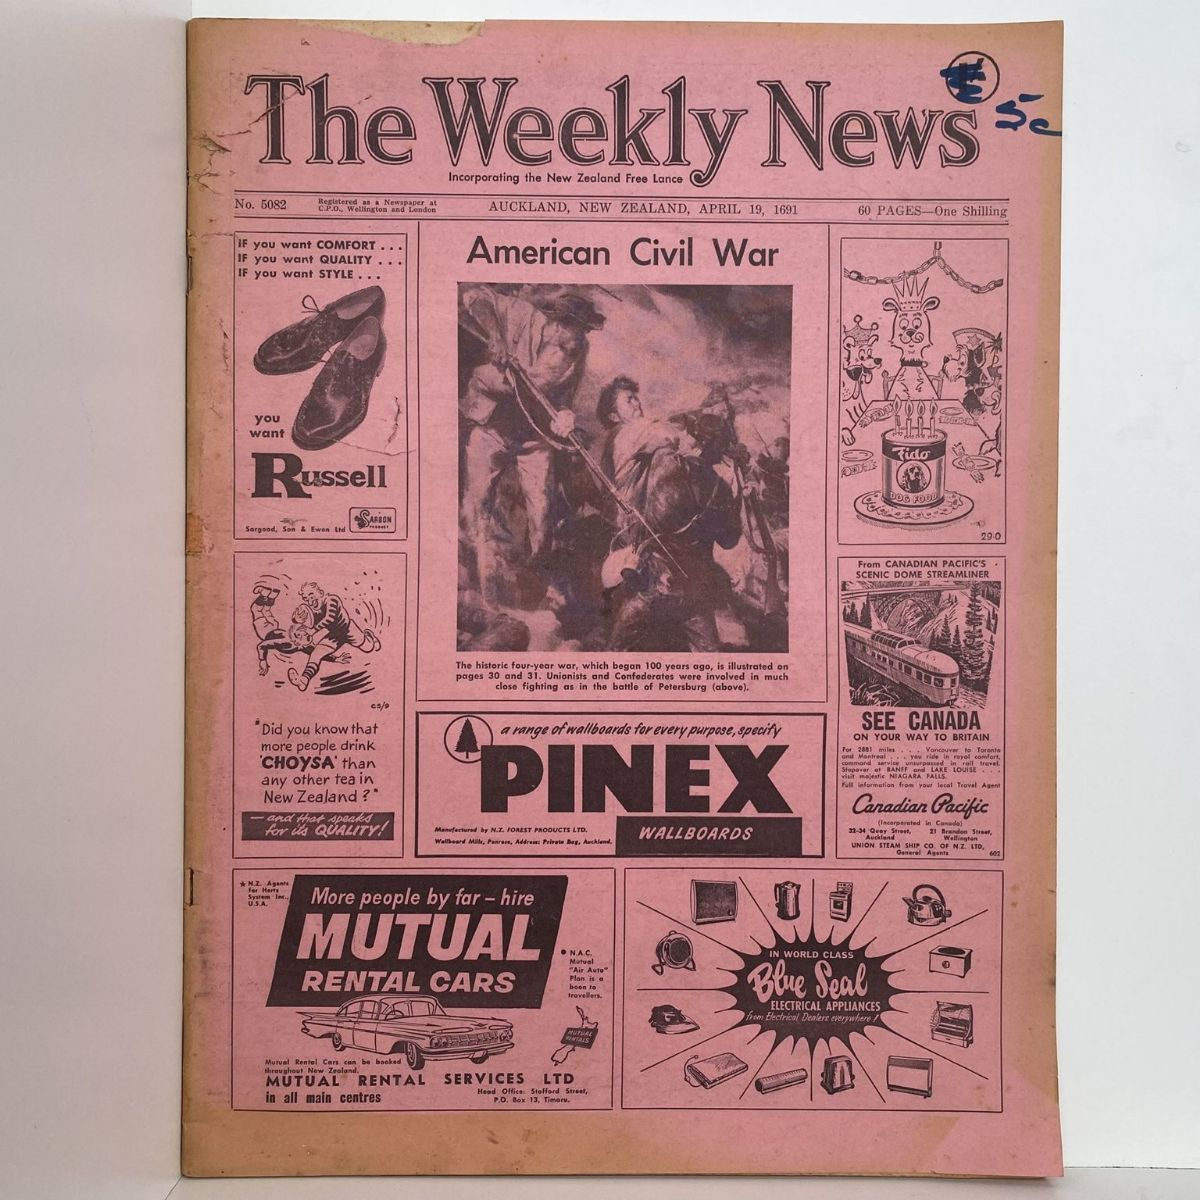 The Weekly News - 19 April 1961